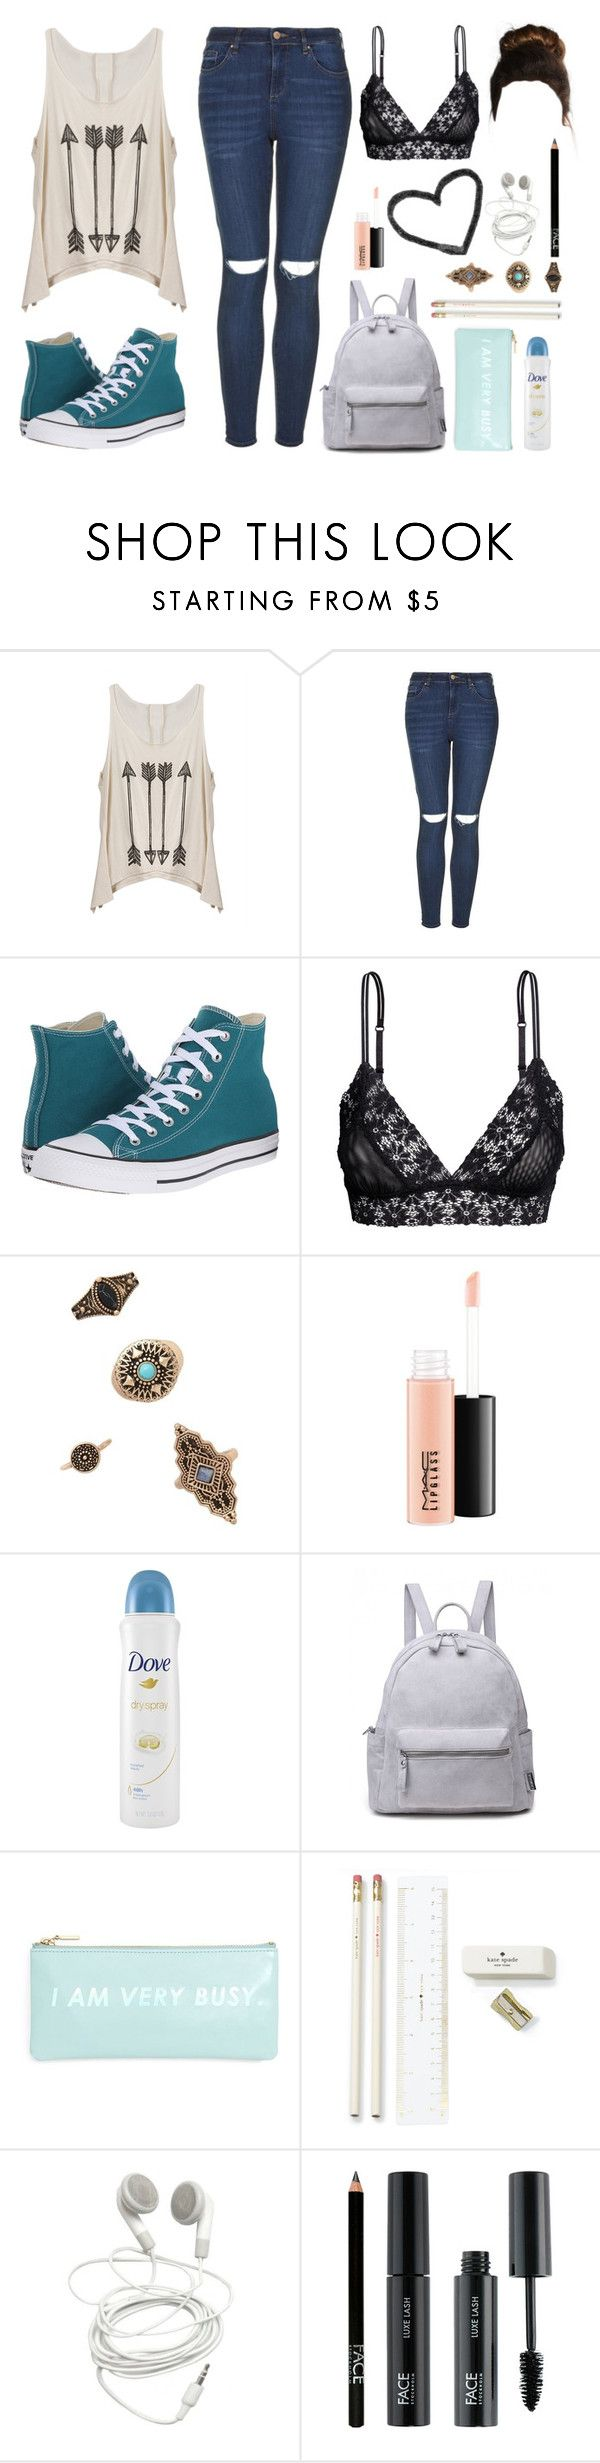 """""""back to school 1/3"""" by sweetprimrose ❤ liked on Polyvore featuring Topshop, Converse, Forever 21, MAC Cosmetics, Dove, ban.do, Kate Spade and FACE Stockholm"""